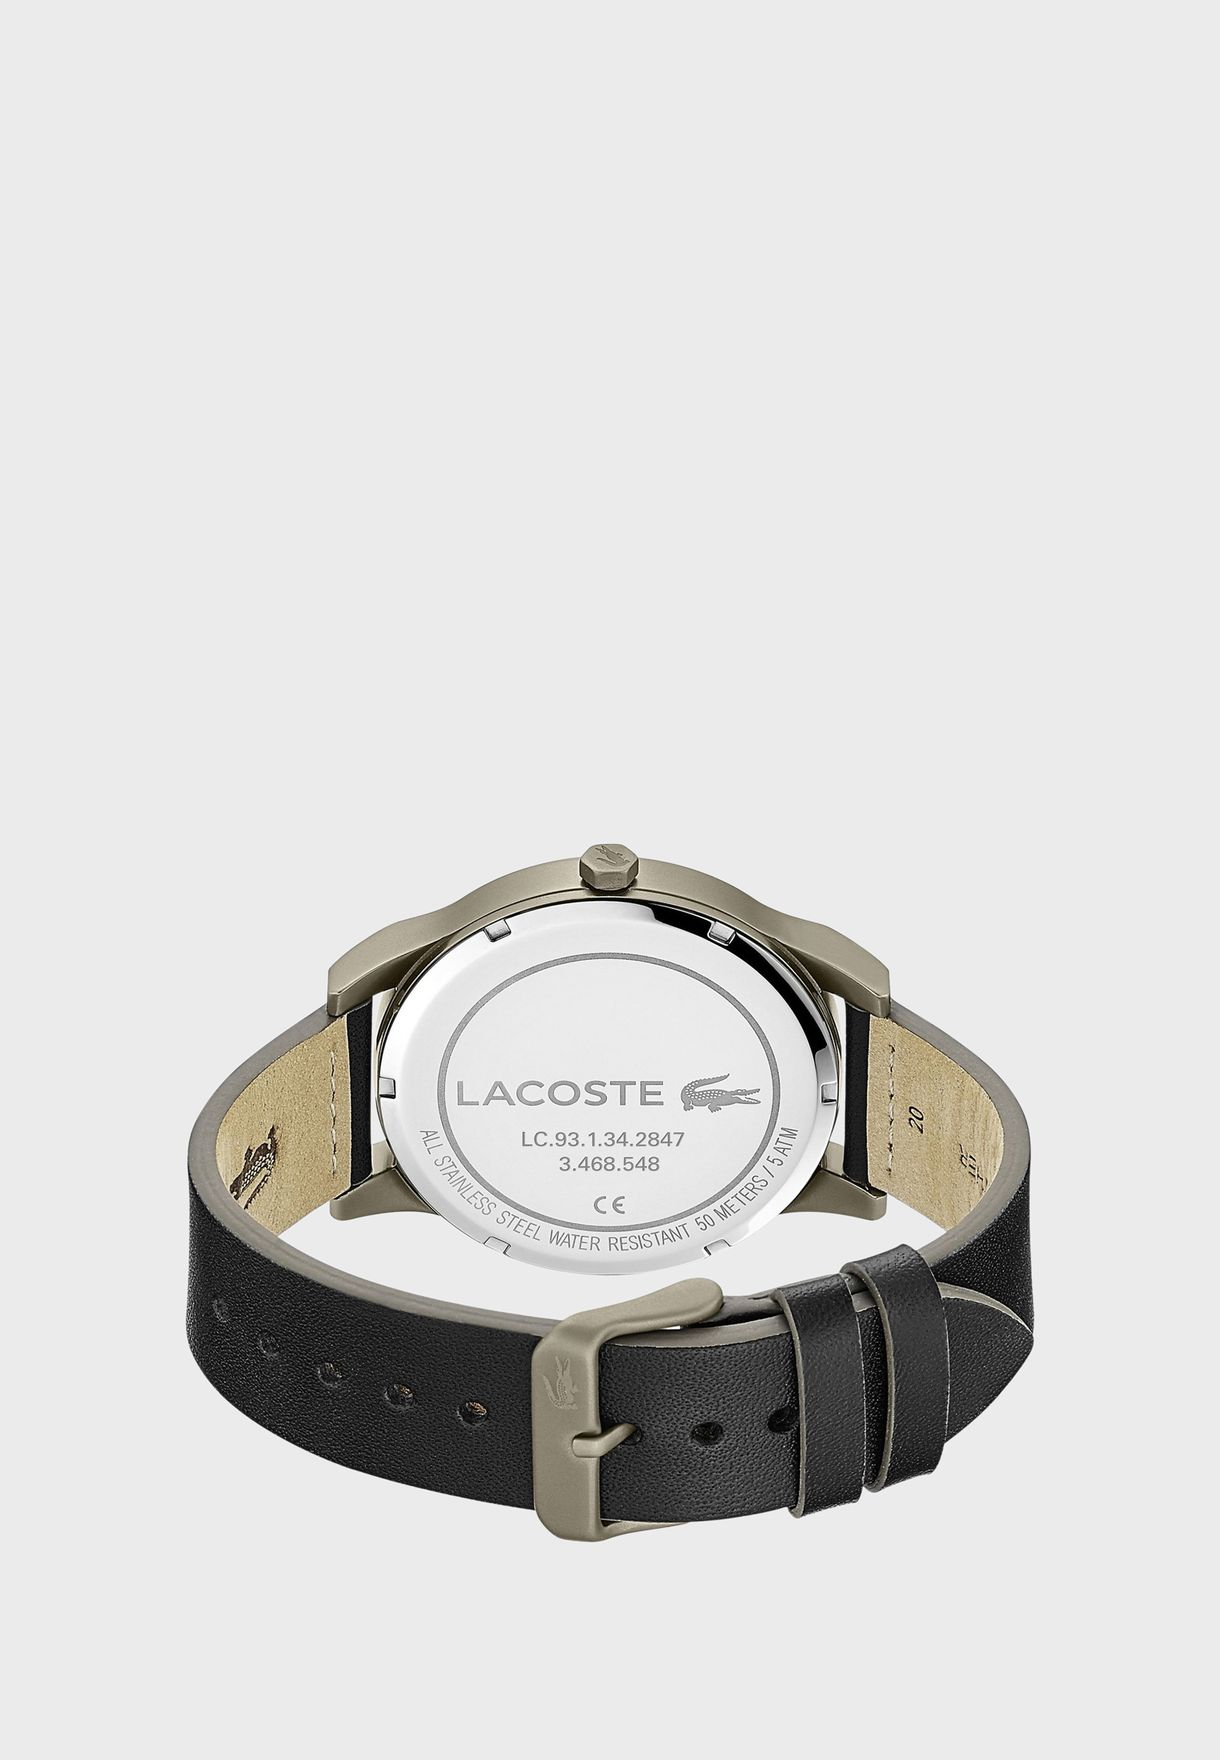 Lacoste KYOTO Leather Strap Watch for Men - 2011001